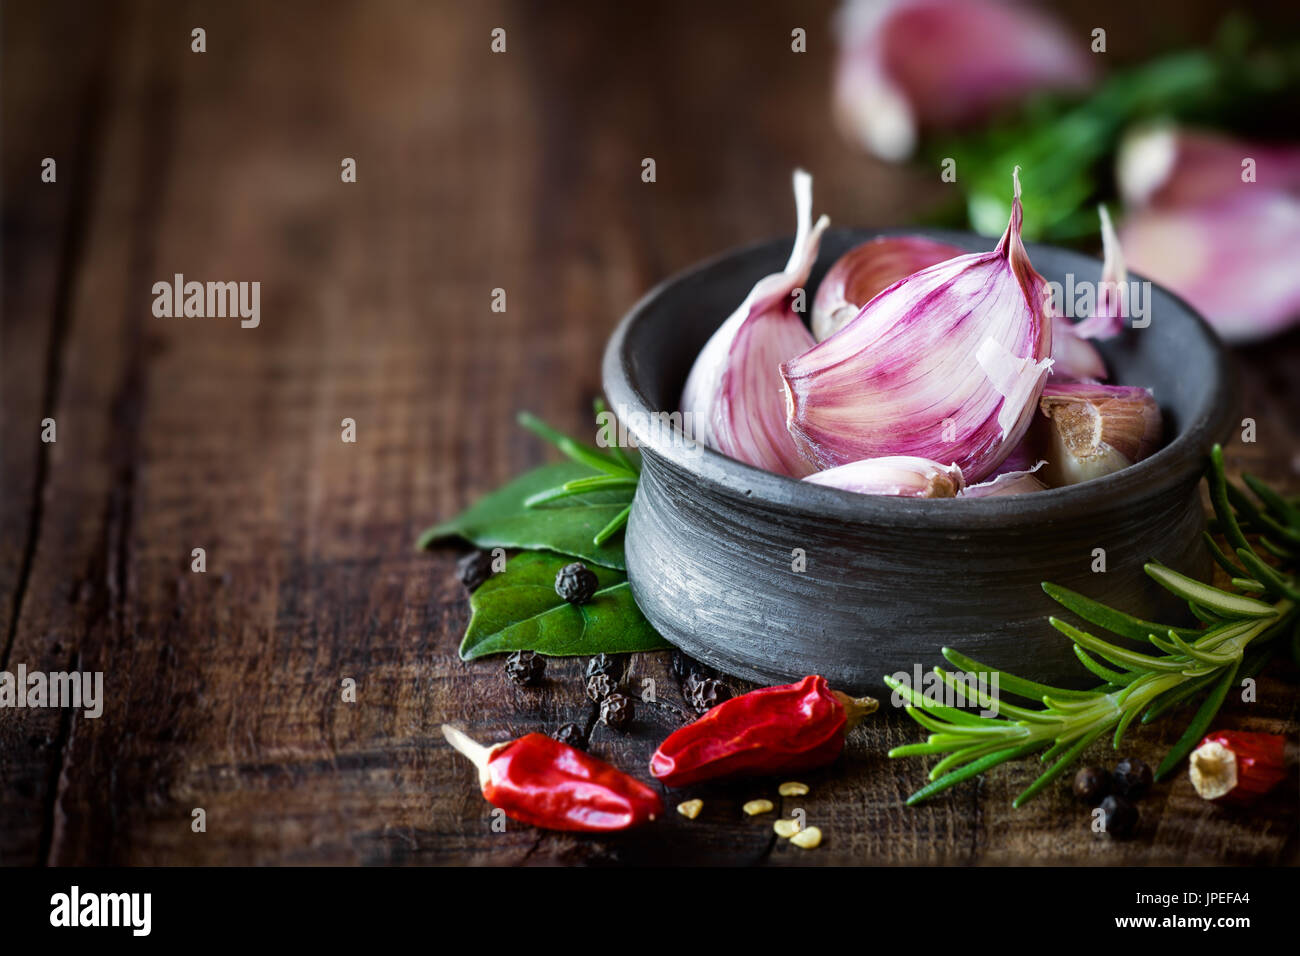 Cloves of purple garlic in a black bowl with rosemary, bay leaf, black pepper and chili pepper on dark rustic wooden - Stock Image